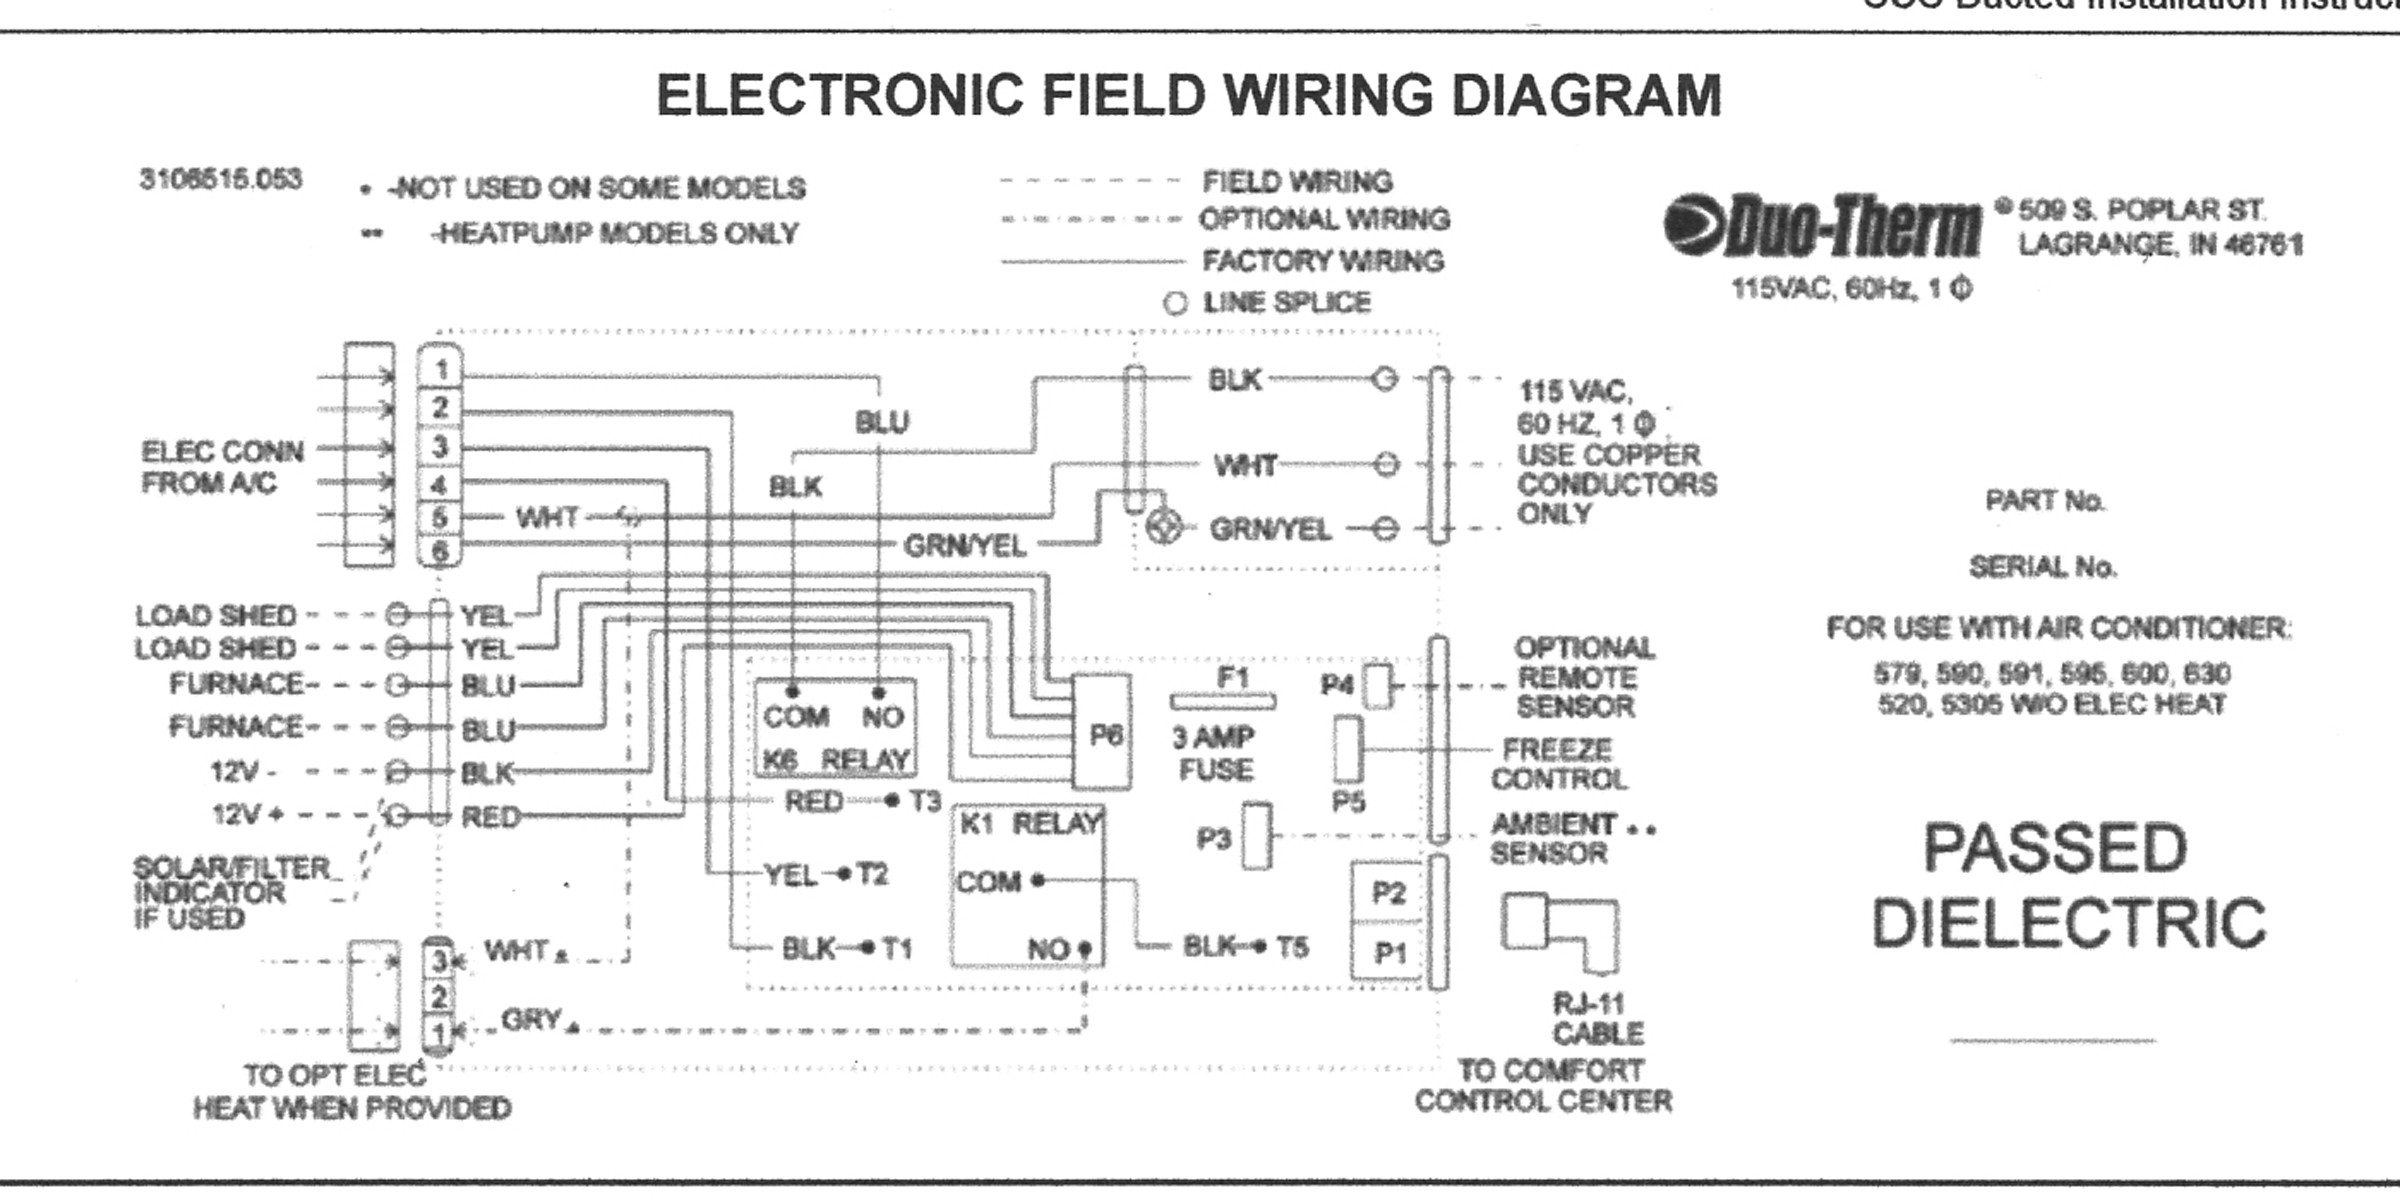 duo therm thermostat wiring diagram Collection-Wiring A Ac thermostat Diagram New Duo therm thermostat Wiring Diagram and Suburban Rv Furnace Wiring 8-r